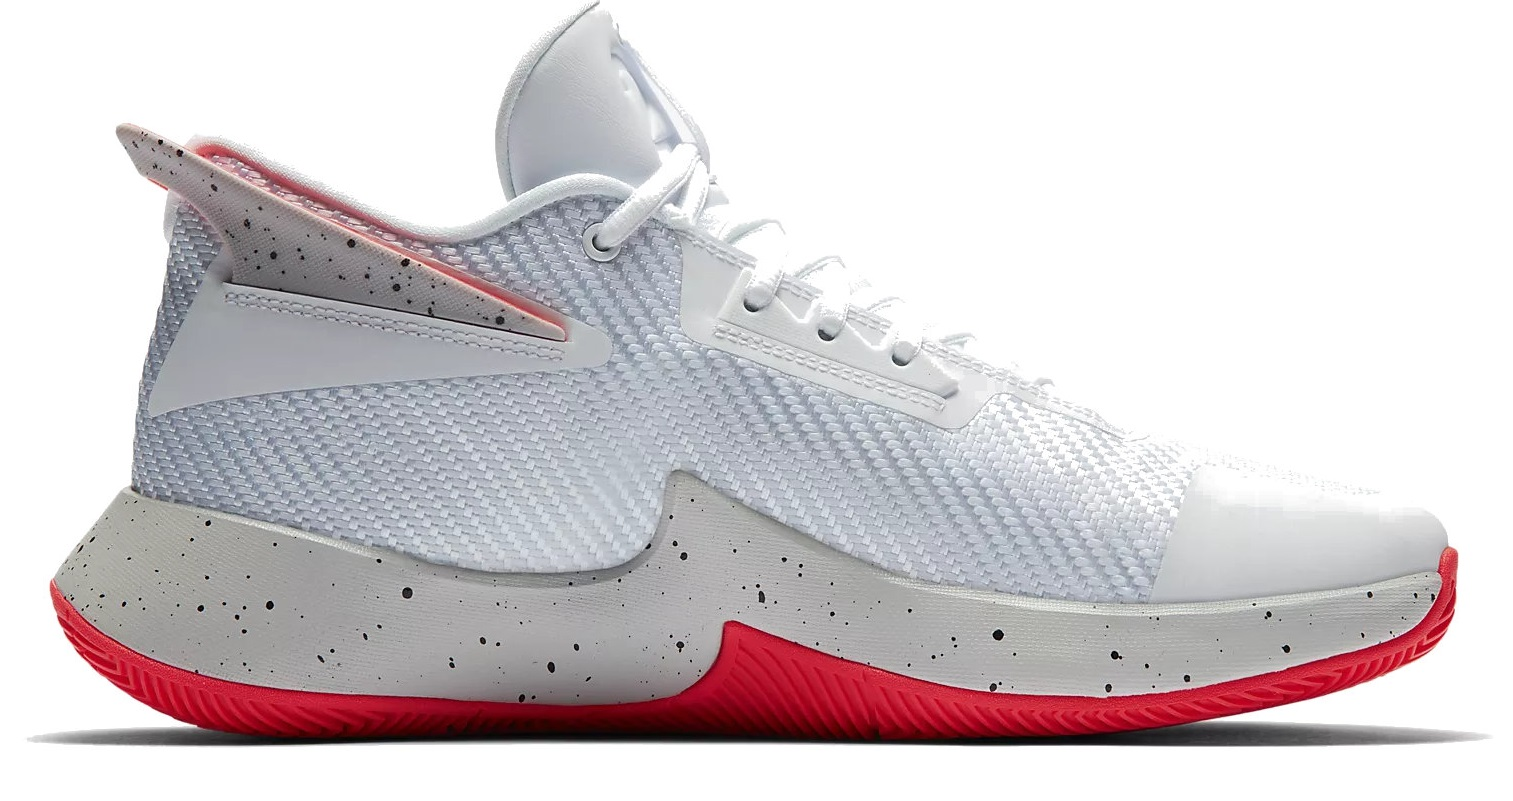 a5d17cac21ee Mens Shoes Basketball Jordan Fly Lockdown colore White Red - Nike -  SportIT.com